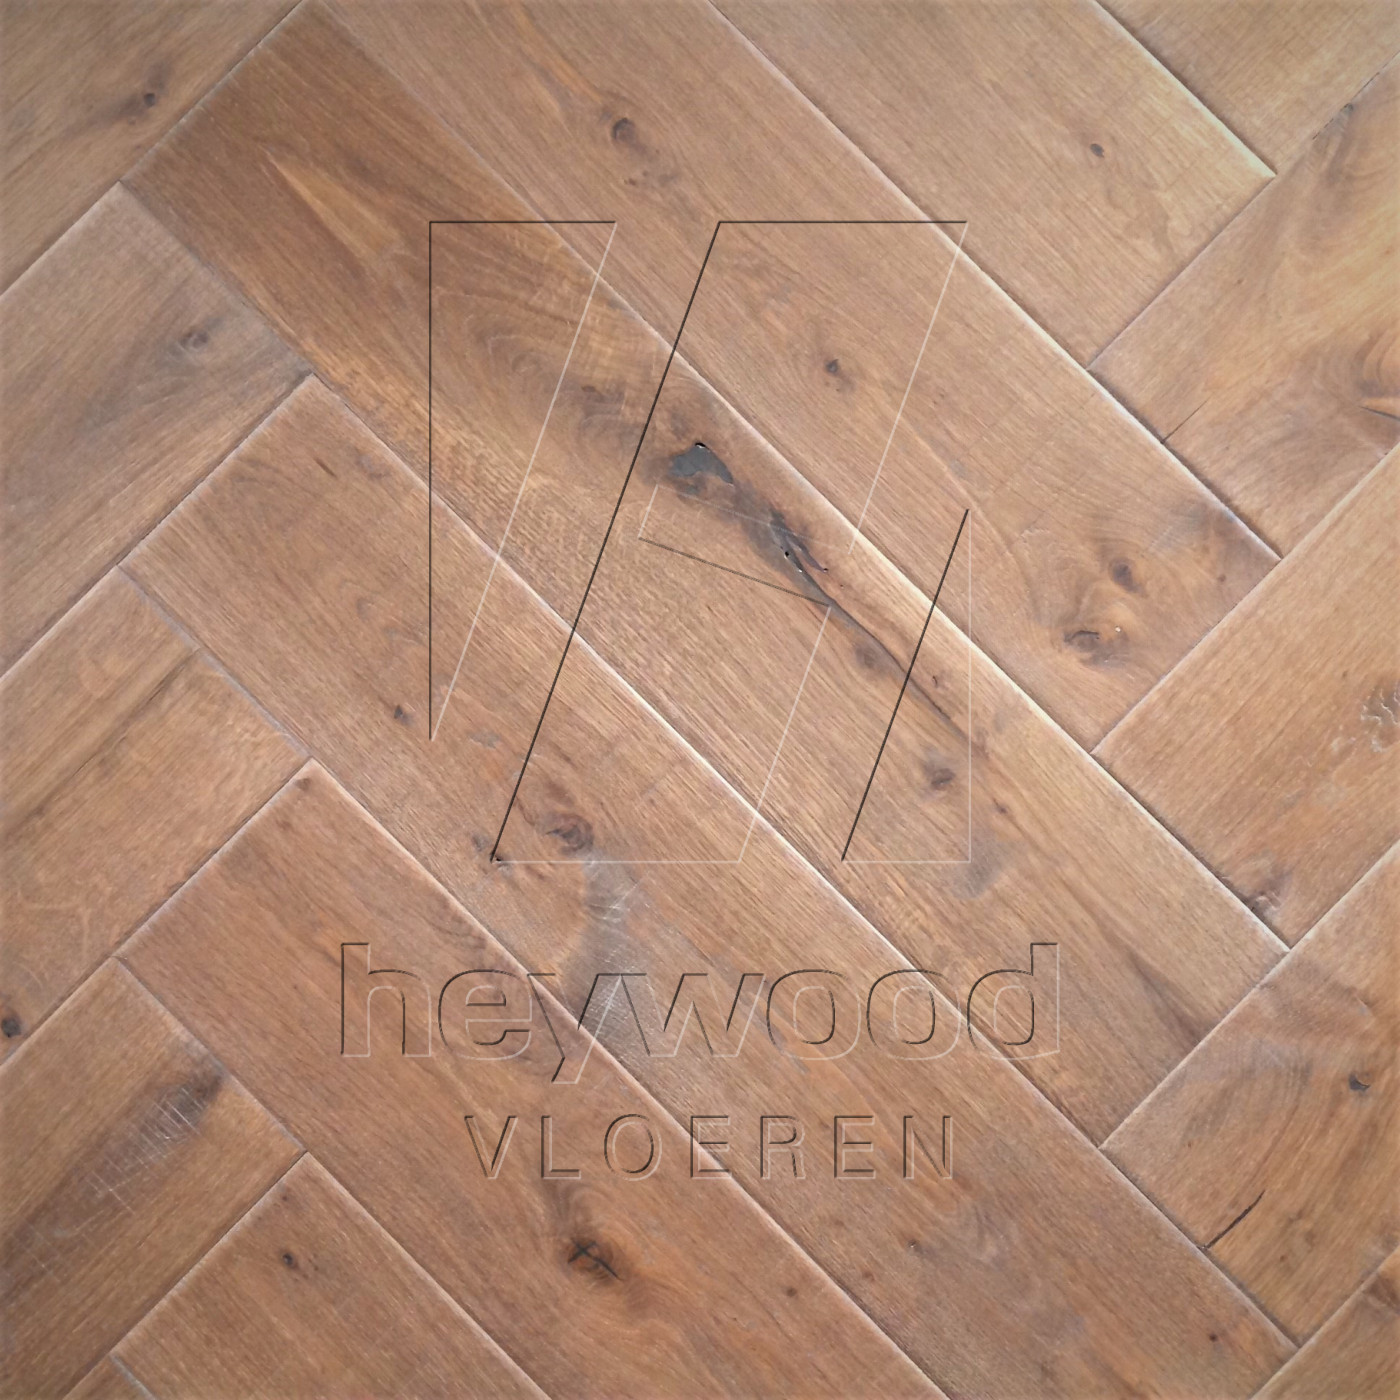 Shrunk Herringbone 'Guadalupe' in Herringbone of Pattern & Panel Floors